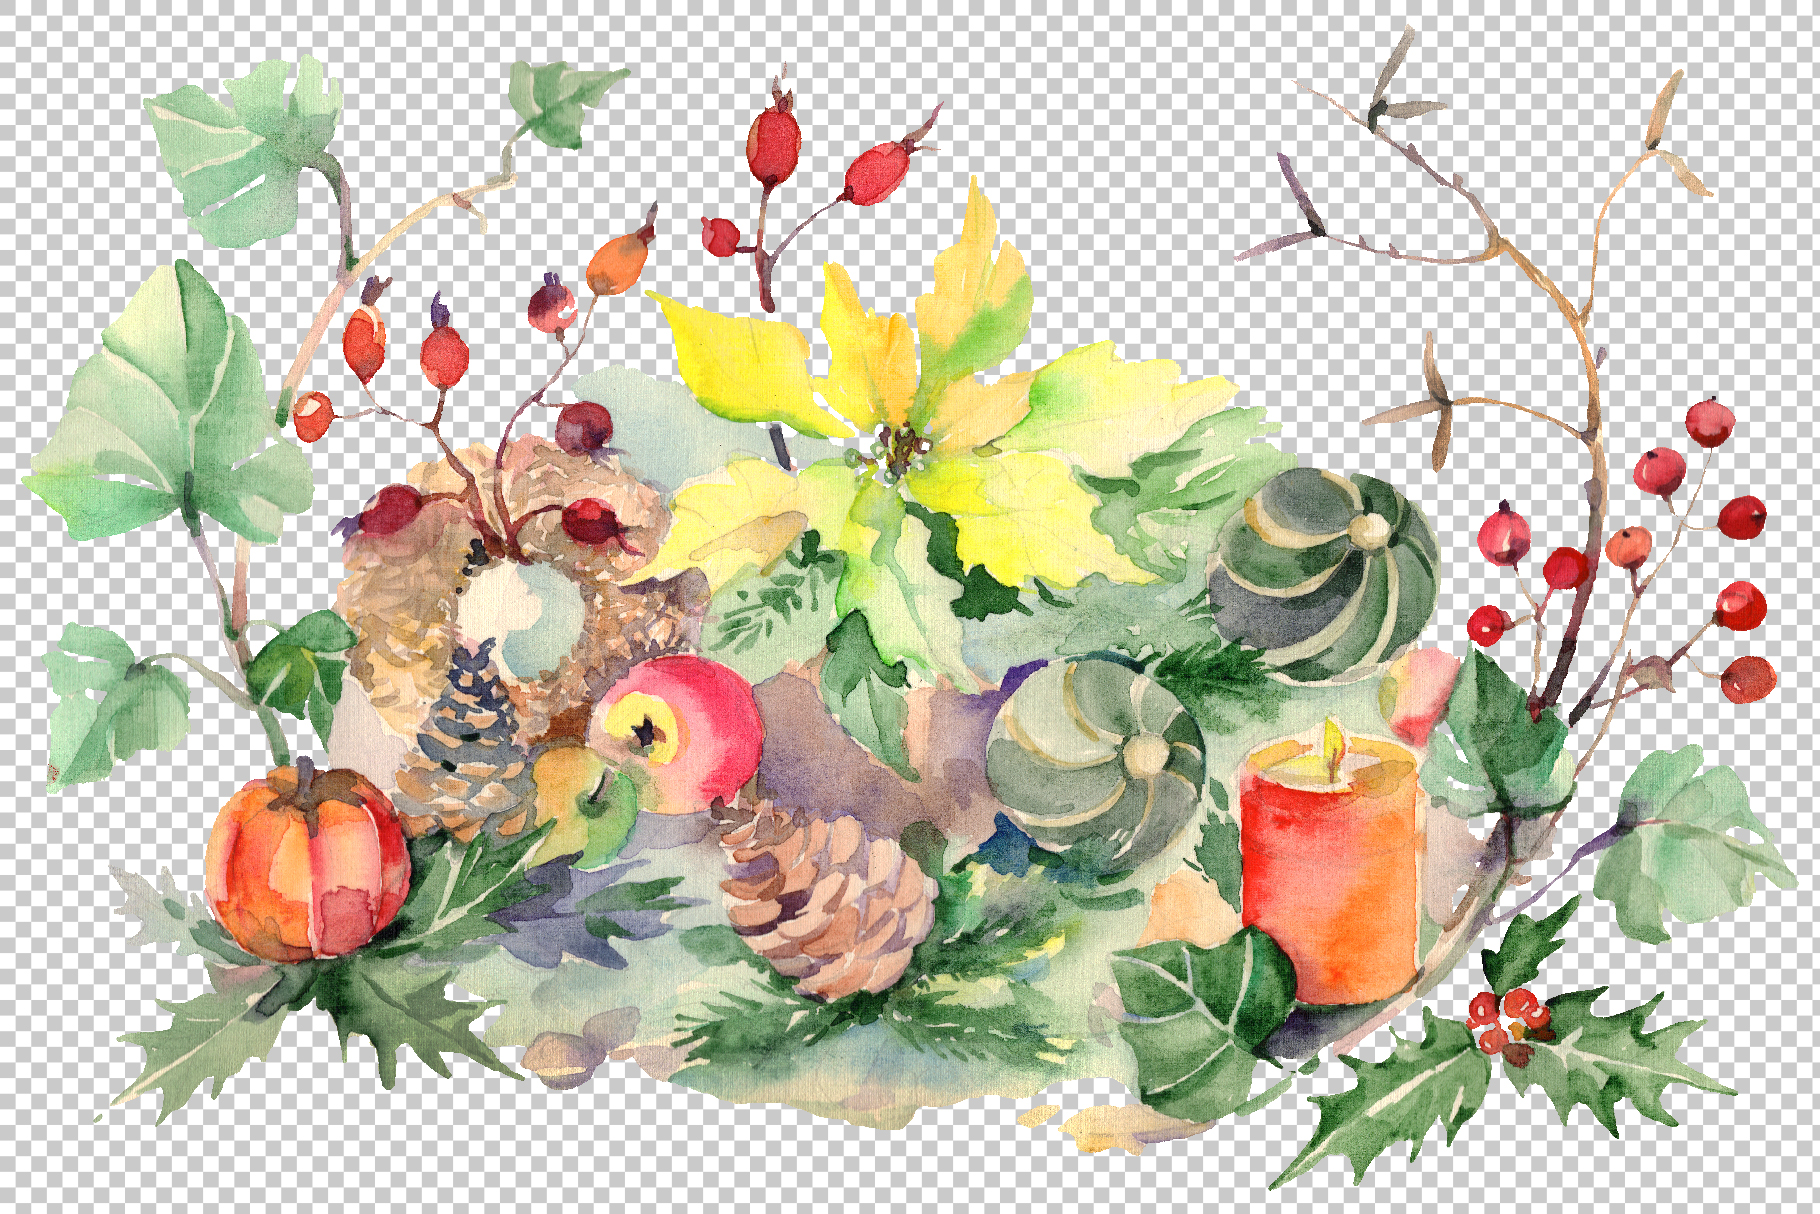 Christmas bouquet snowstorm Watercolor png example image 2